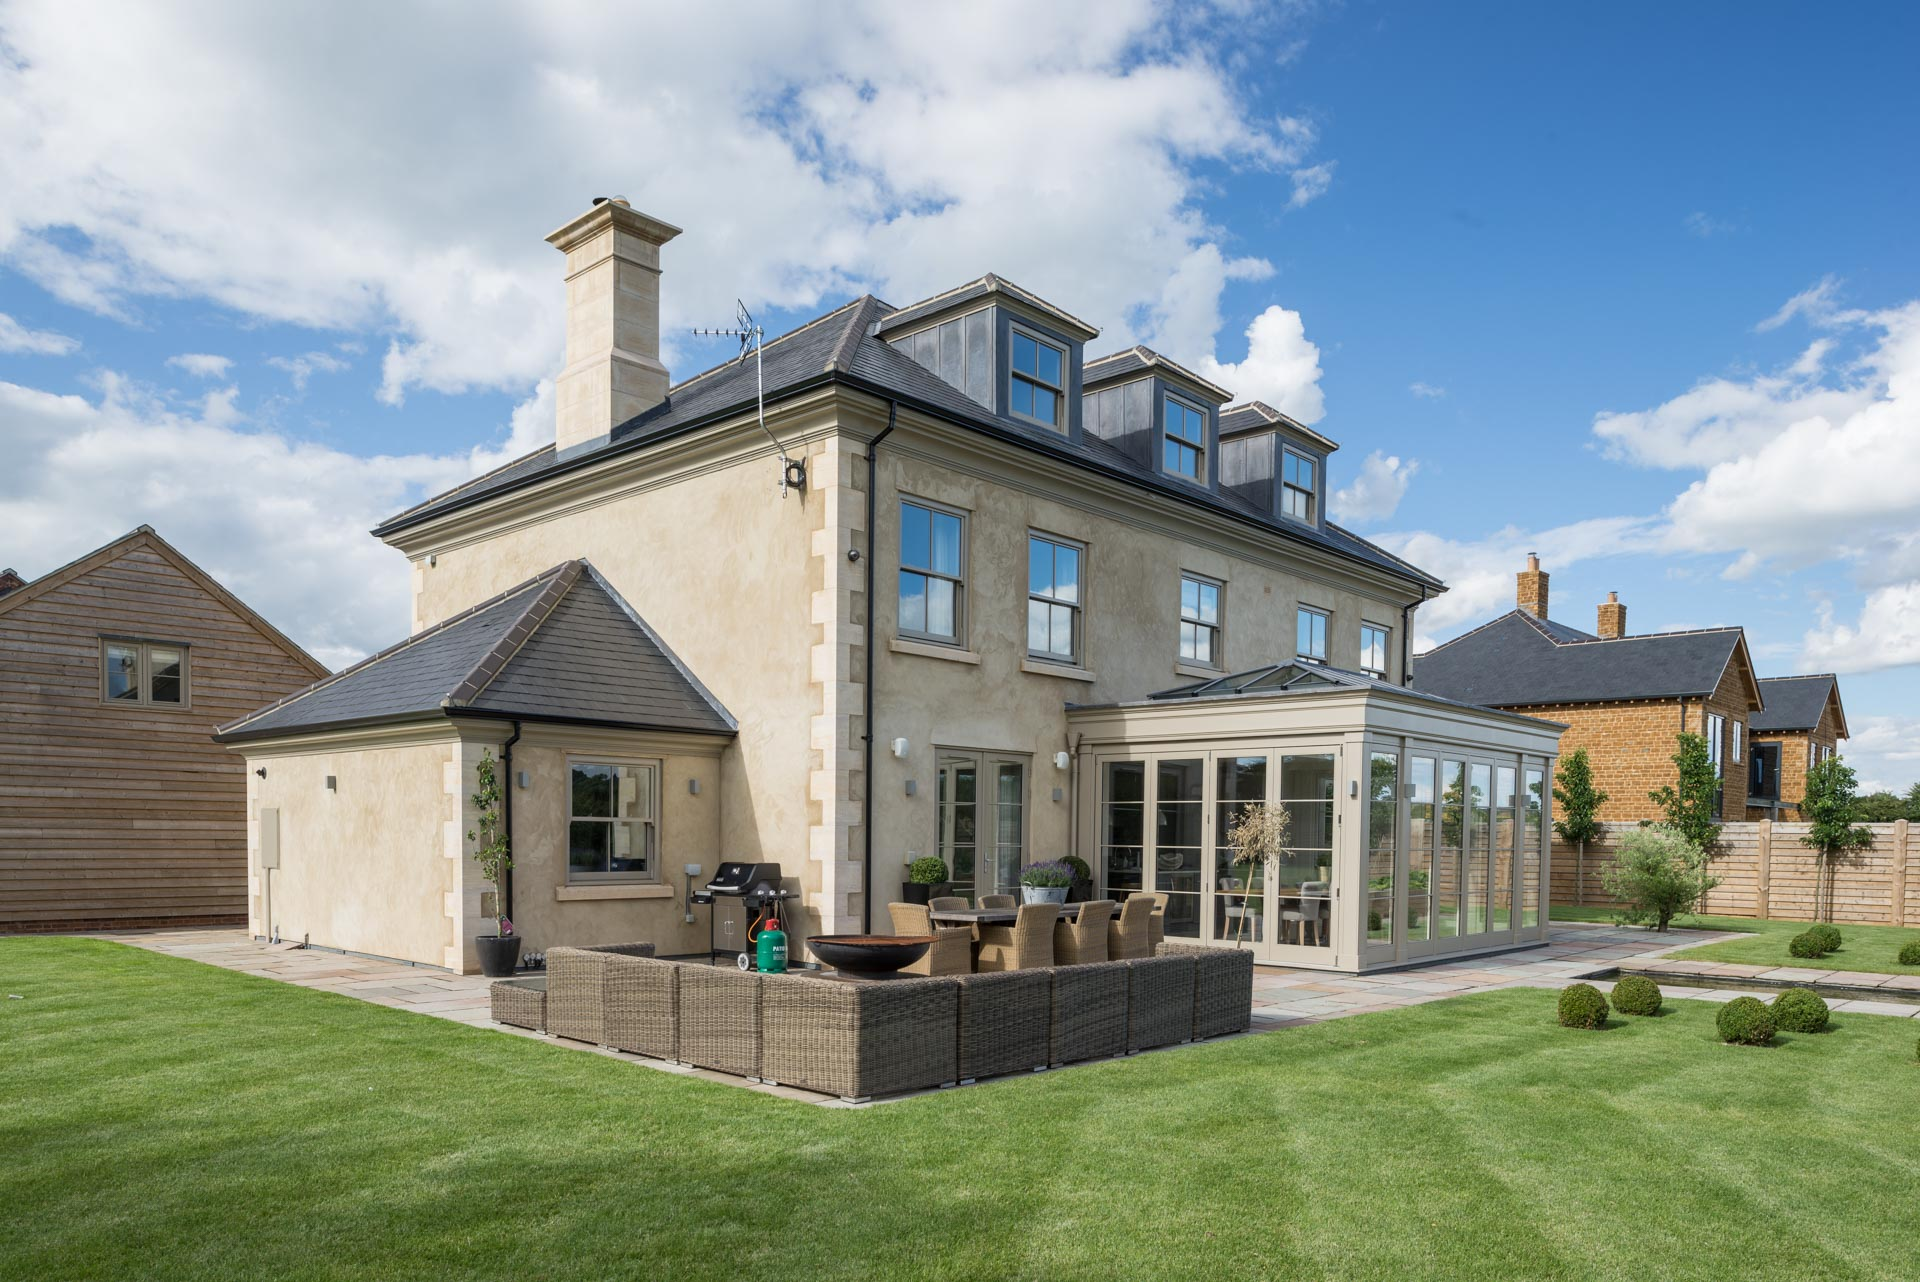 Cupa Pizarras Roofing Slate For A Prestigious Development